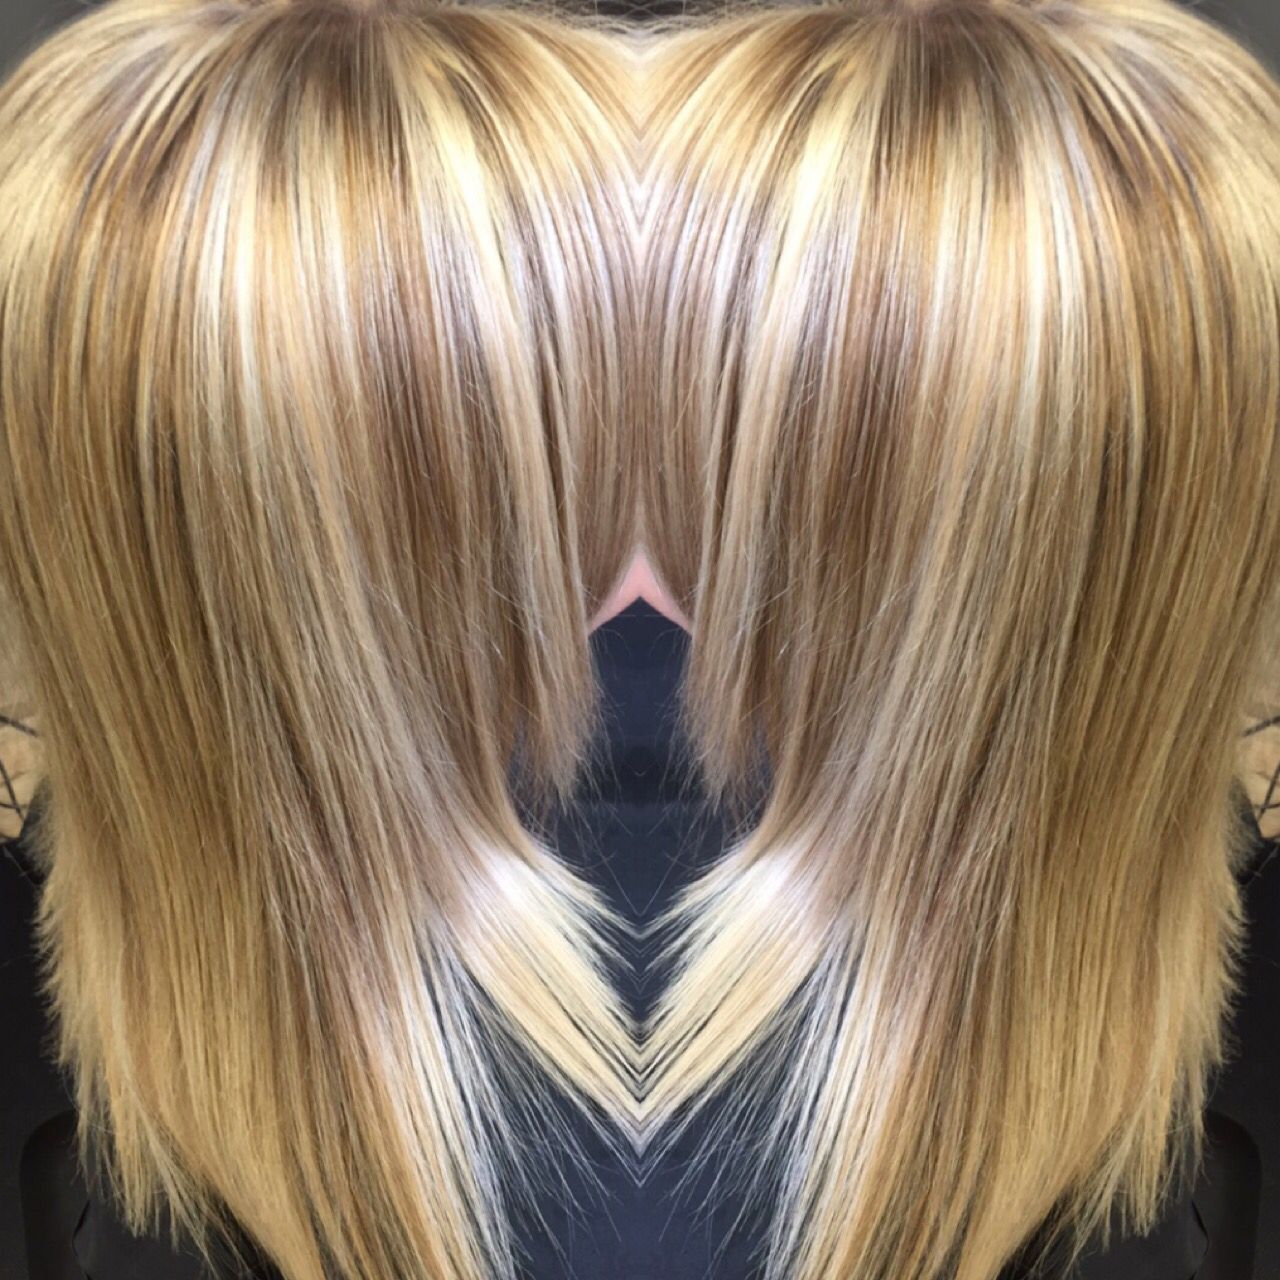 Kenra Lightener Mixed 1 1 Ratio With 30 Volume Developer And Olaplex 8gb Mixed 1 1 Ratio With 20 Volume D Hair Color Formulas Blonde Hair Color Honey Blonde